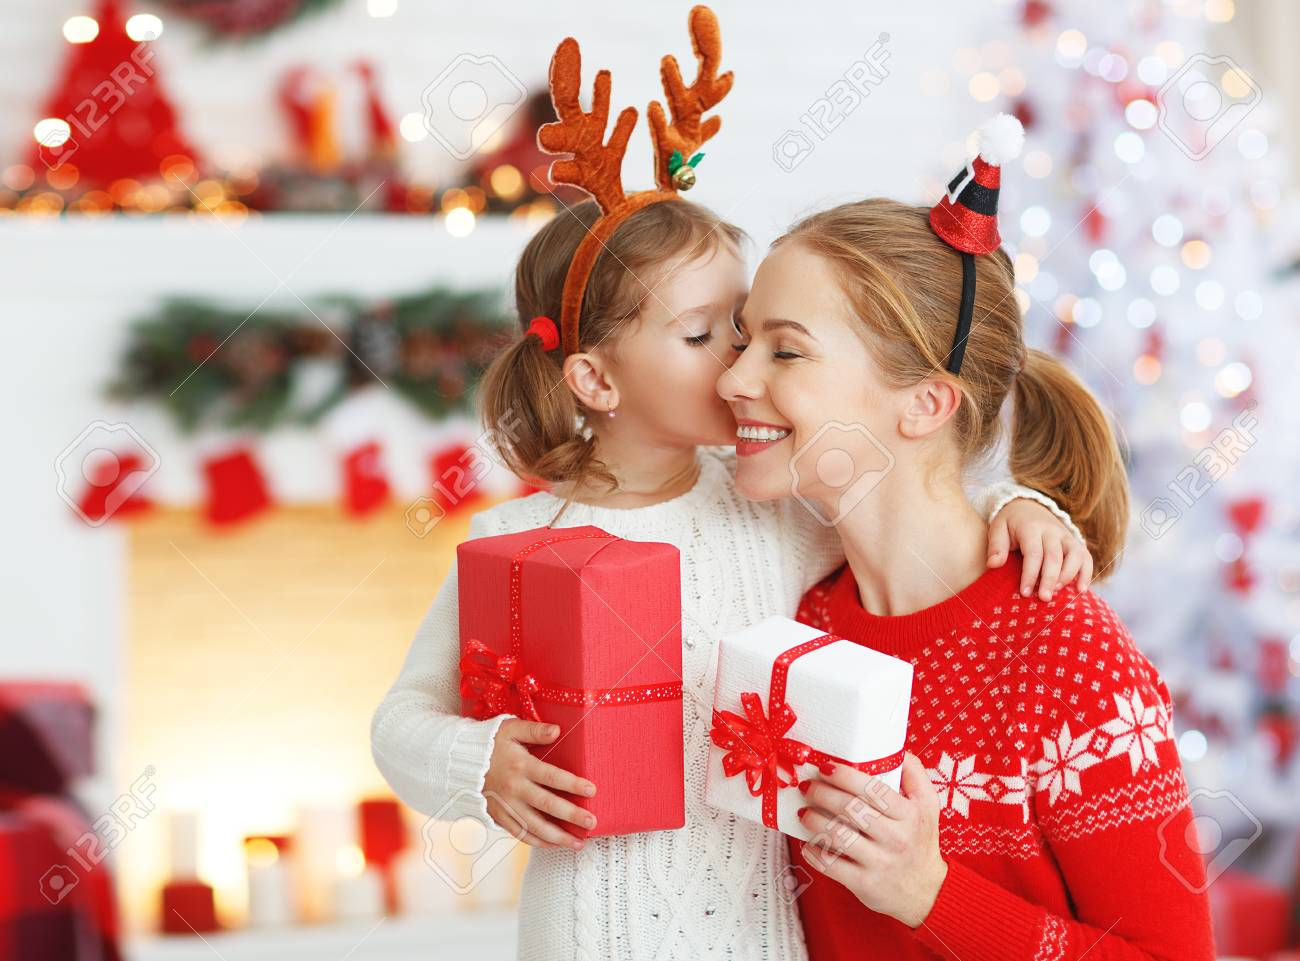 happy family mother and daughter giving christmas gift and embracing - 89274064